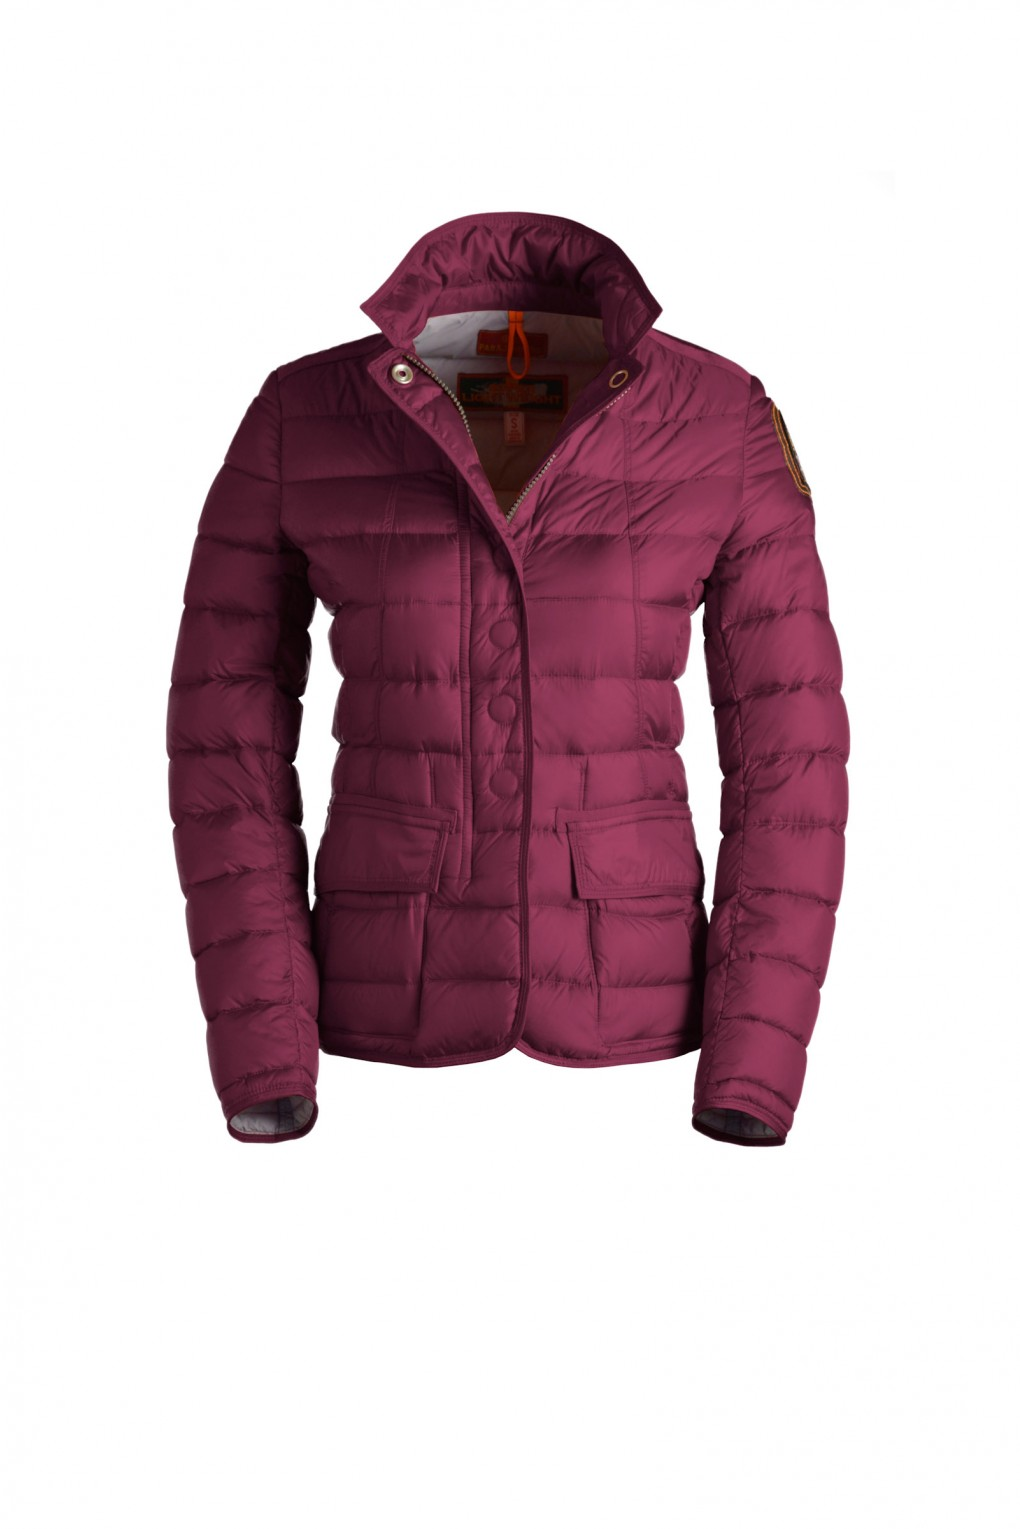 parajumpers ALISEE 6 woman outerwear Fuchsia